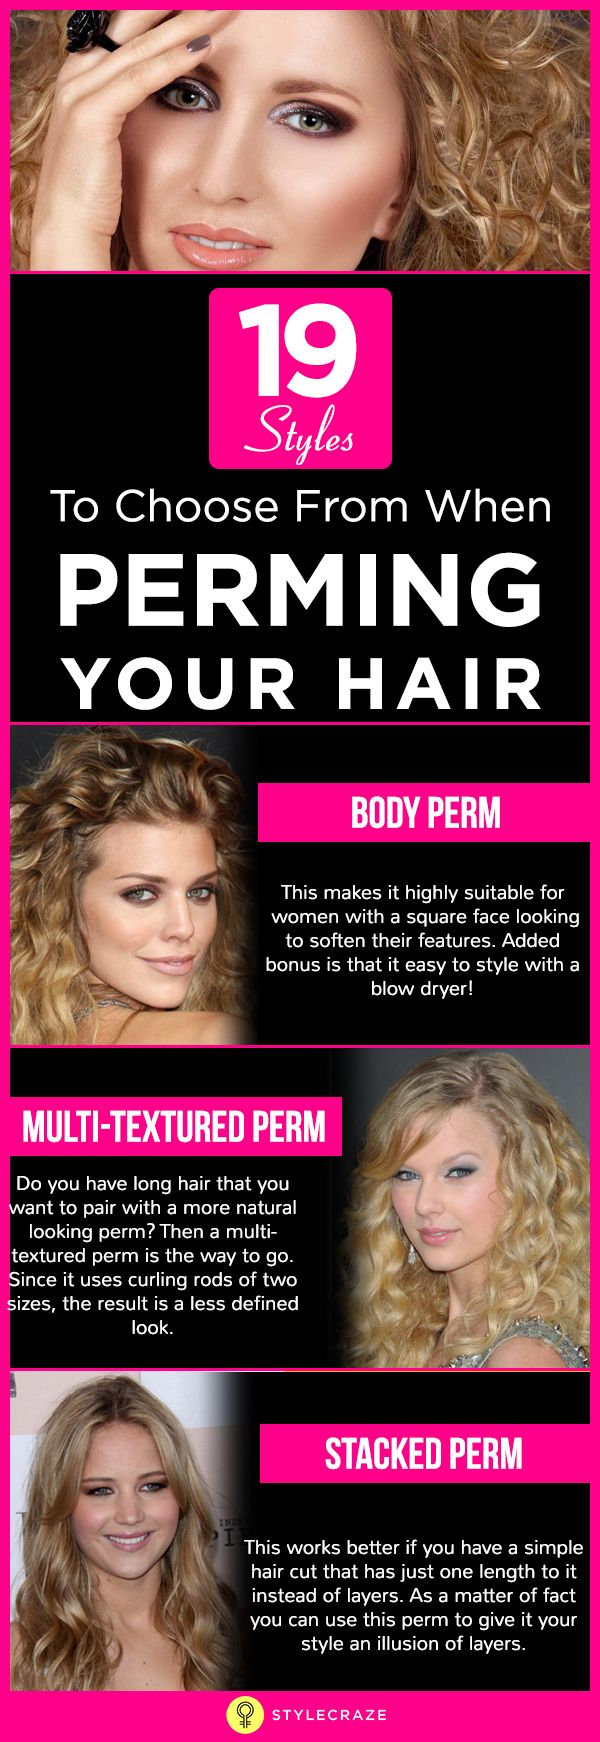 Perming your hair straight - 25 Best Ideas About Types Of Perms On Pinterest Perms Types Perm Rod Sizes And 3a Curls